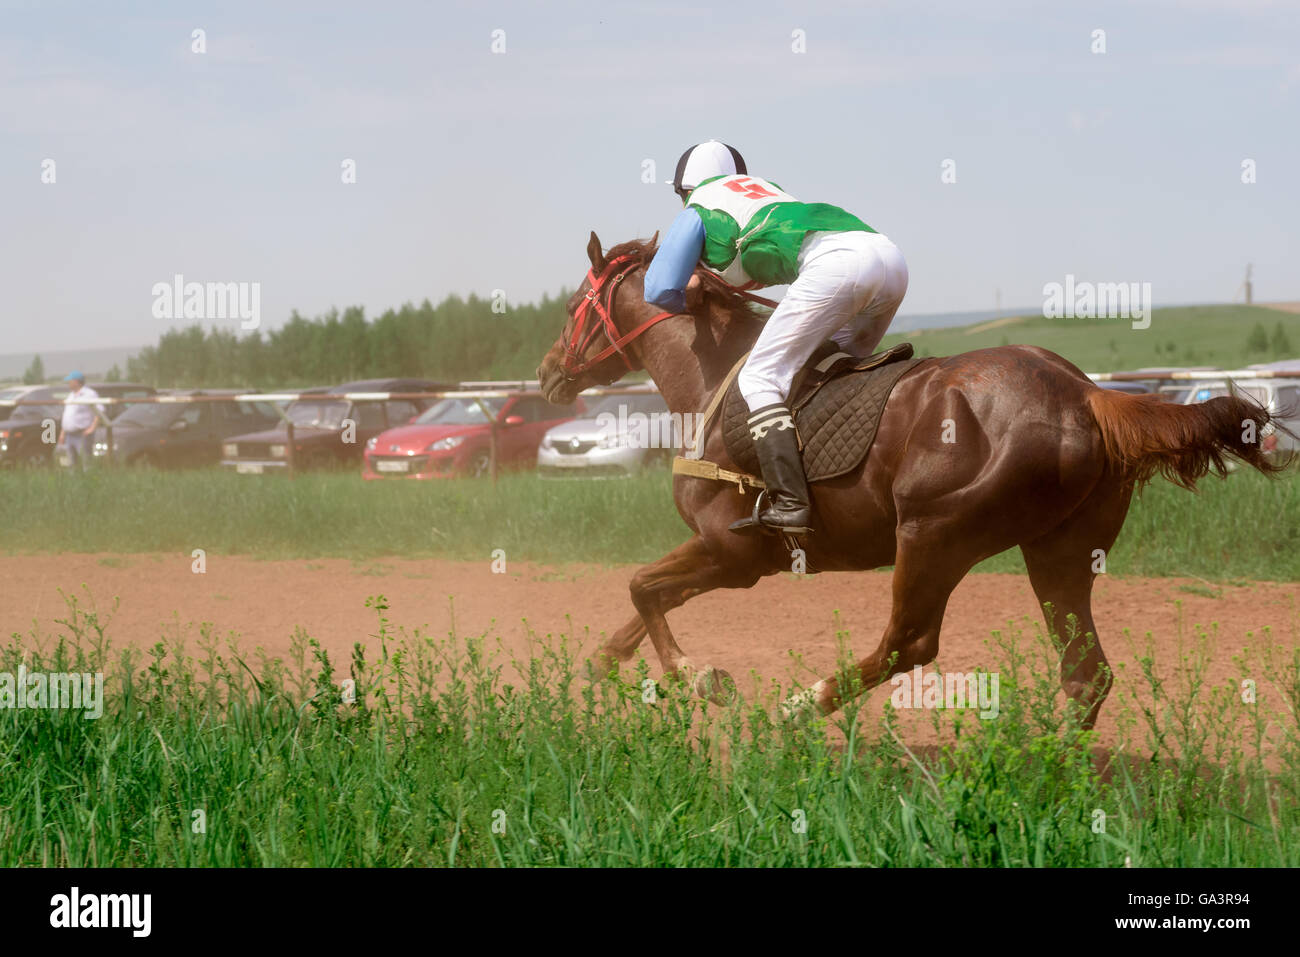 Galloping Horses And Their Riders At A Horse Racing Event In Summer